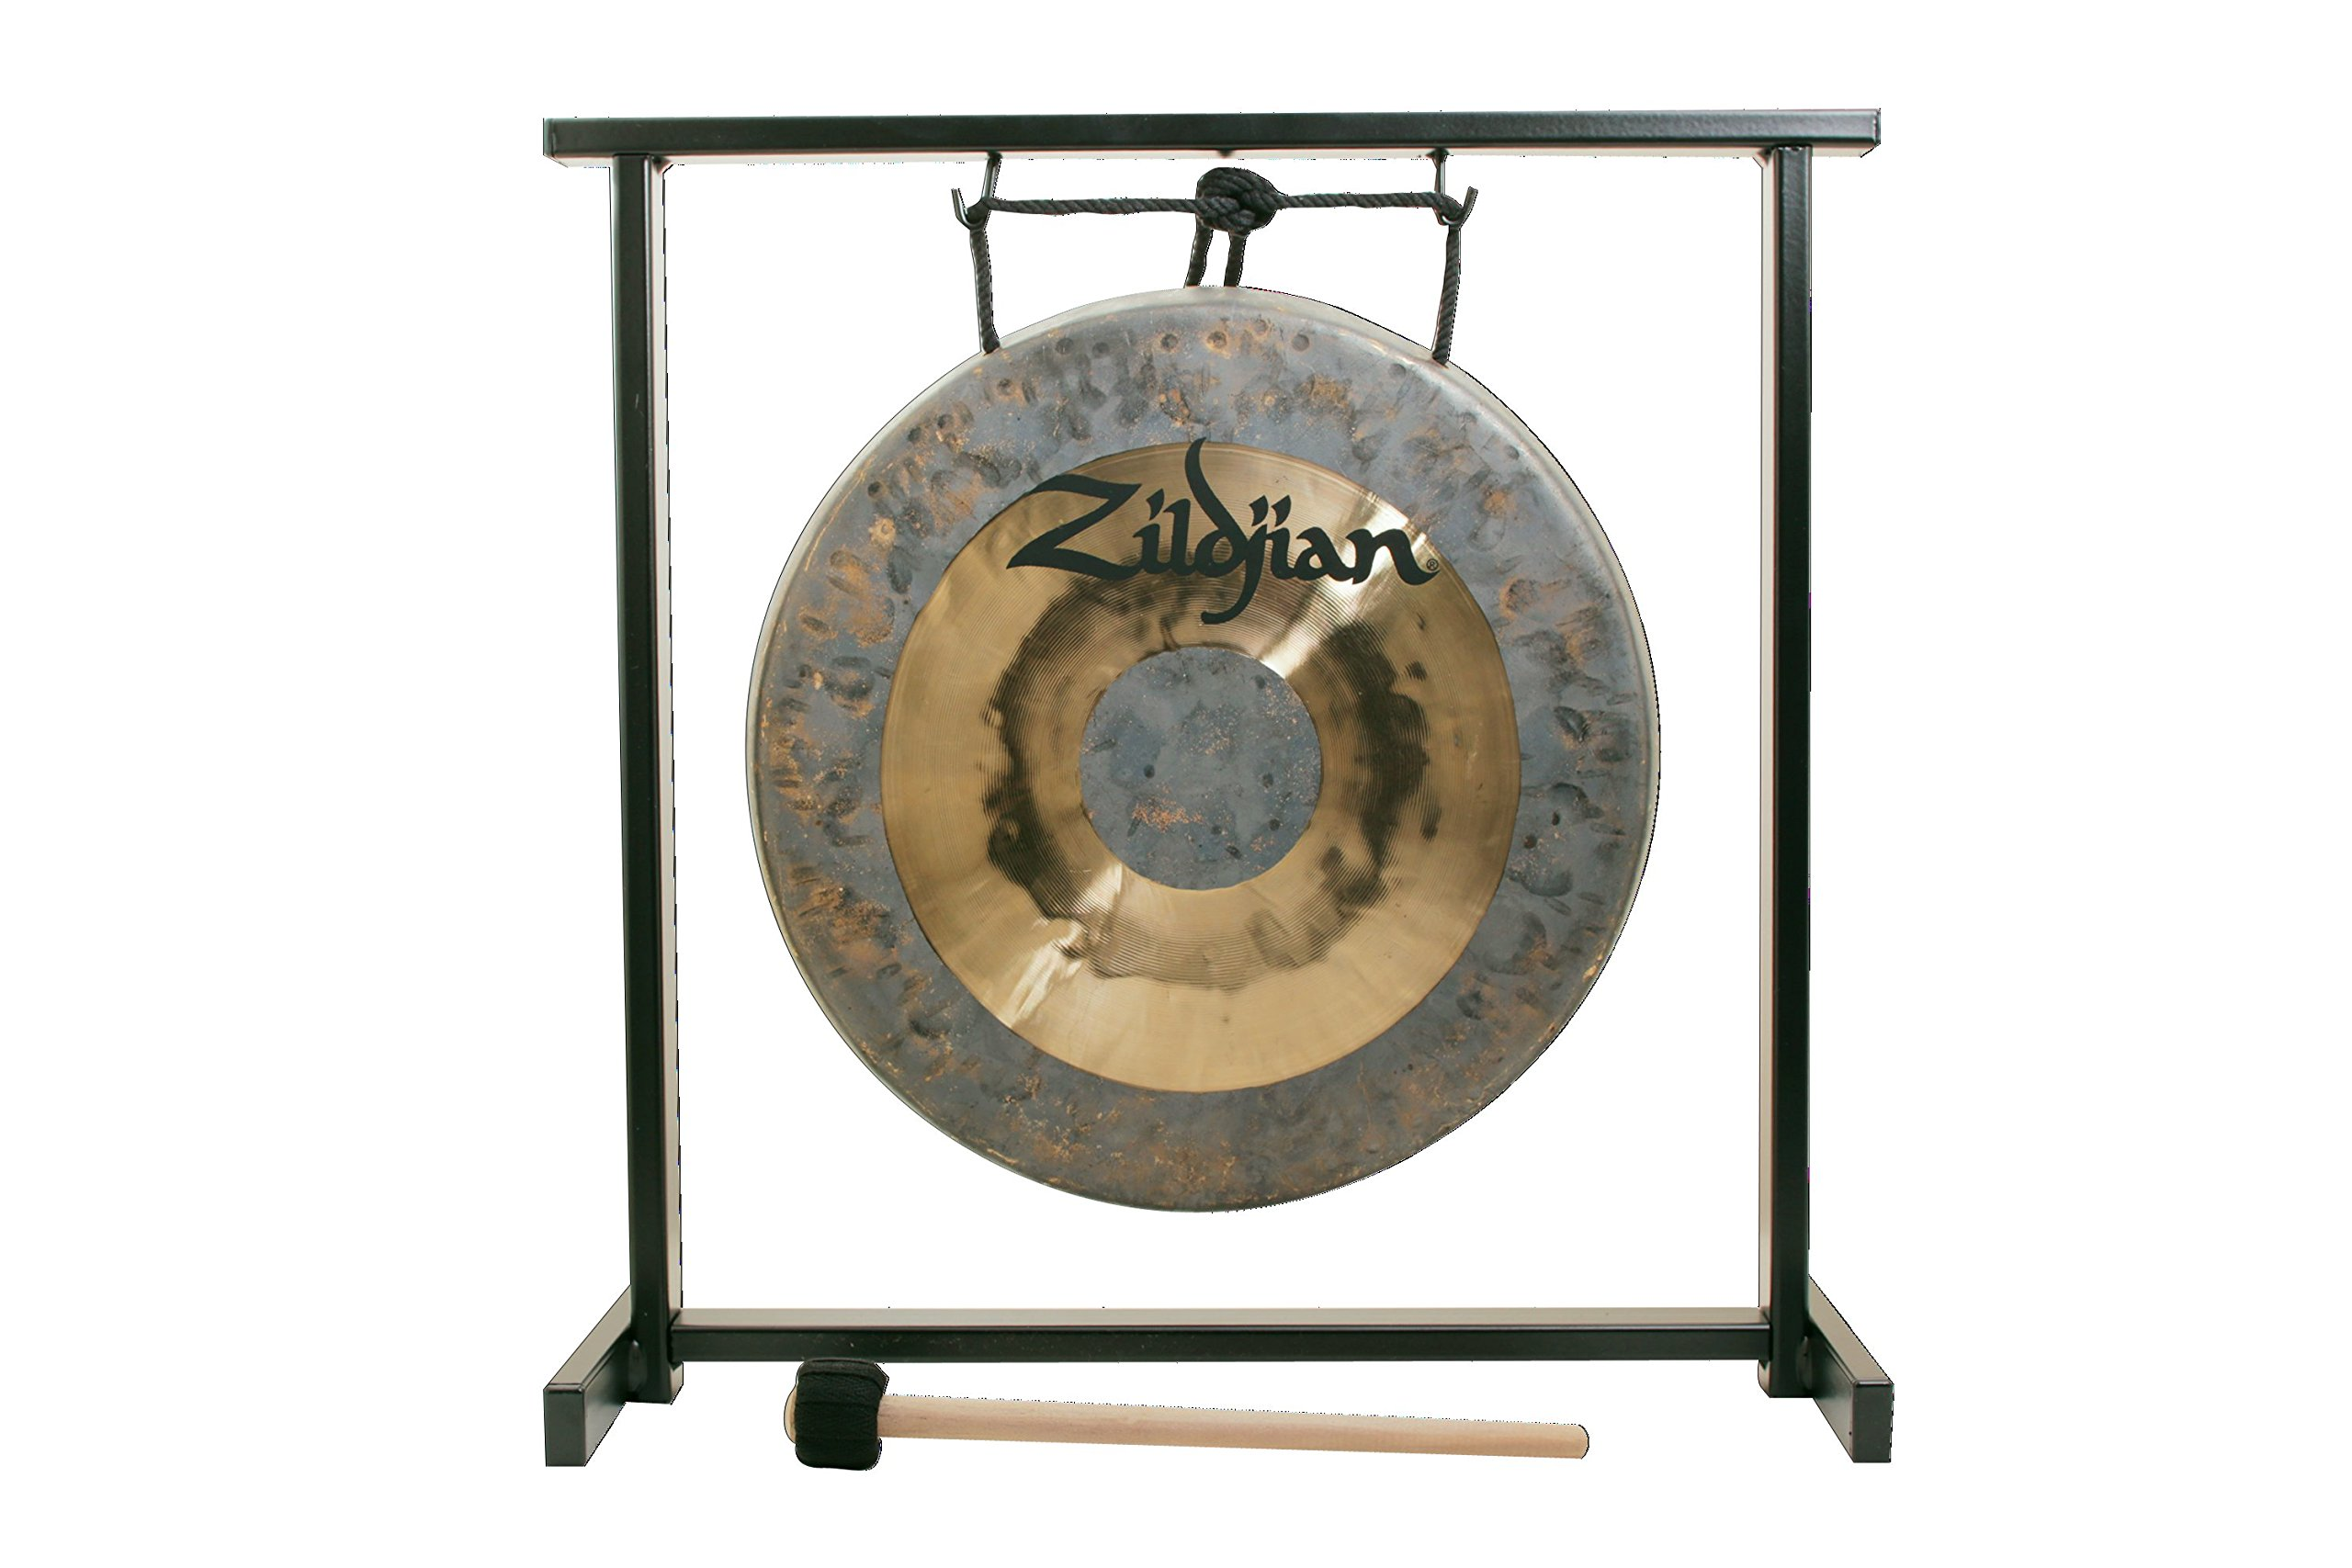 Zildjian 12'' Table-top Gong and Stand Set